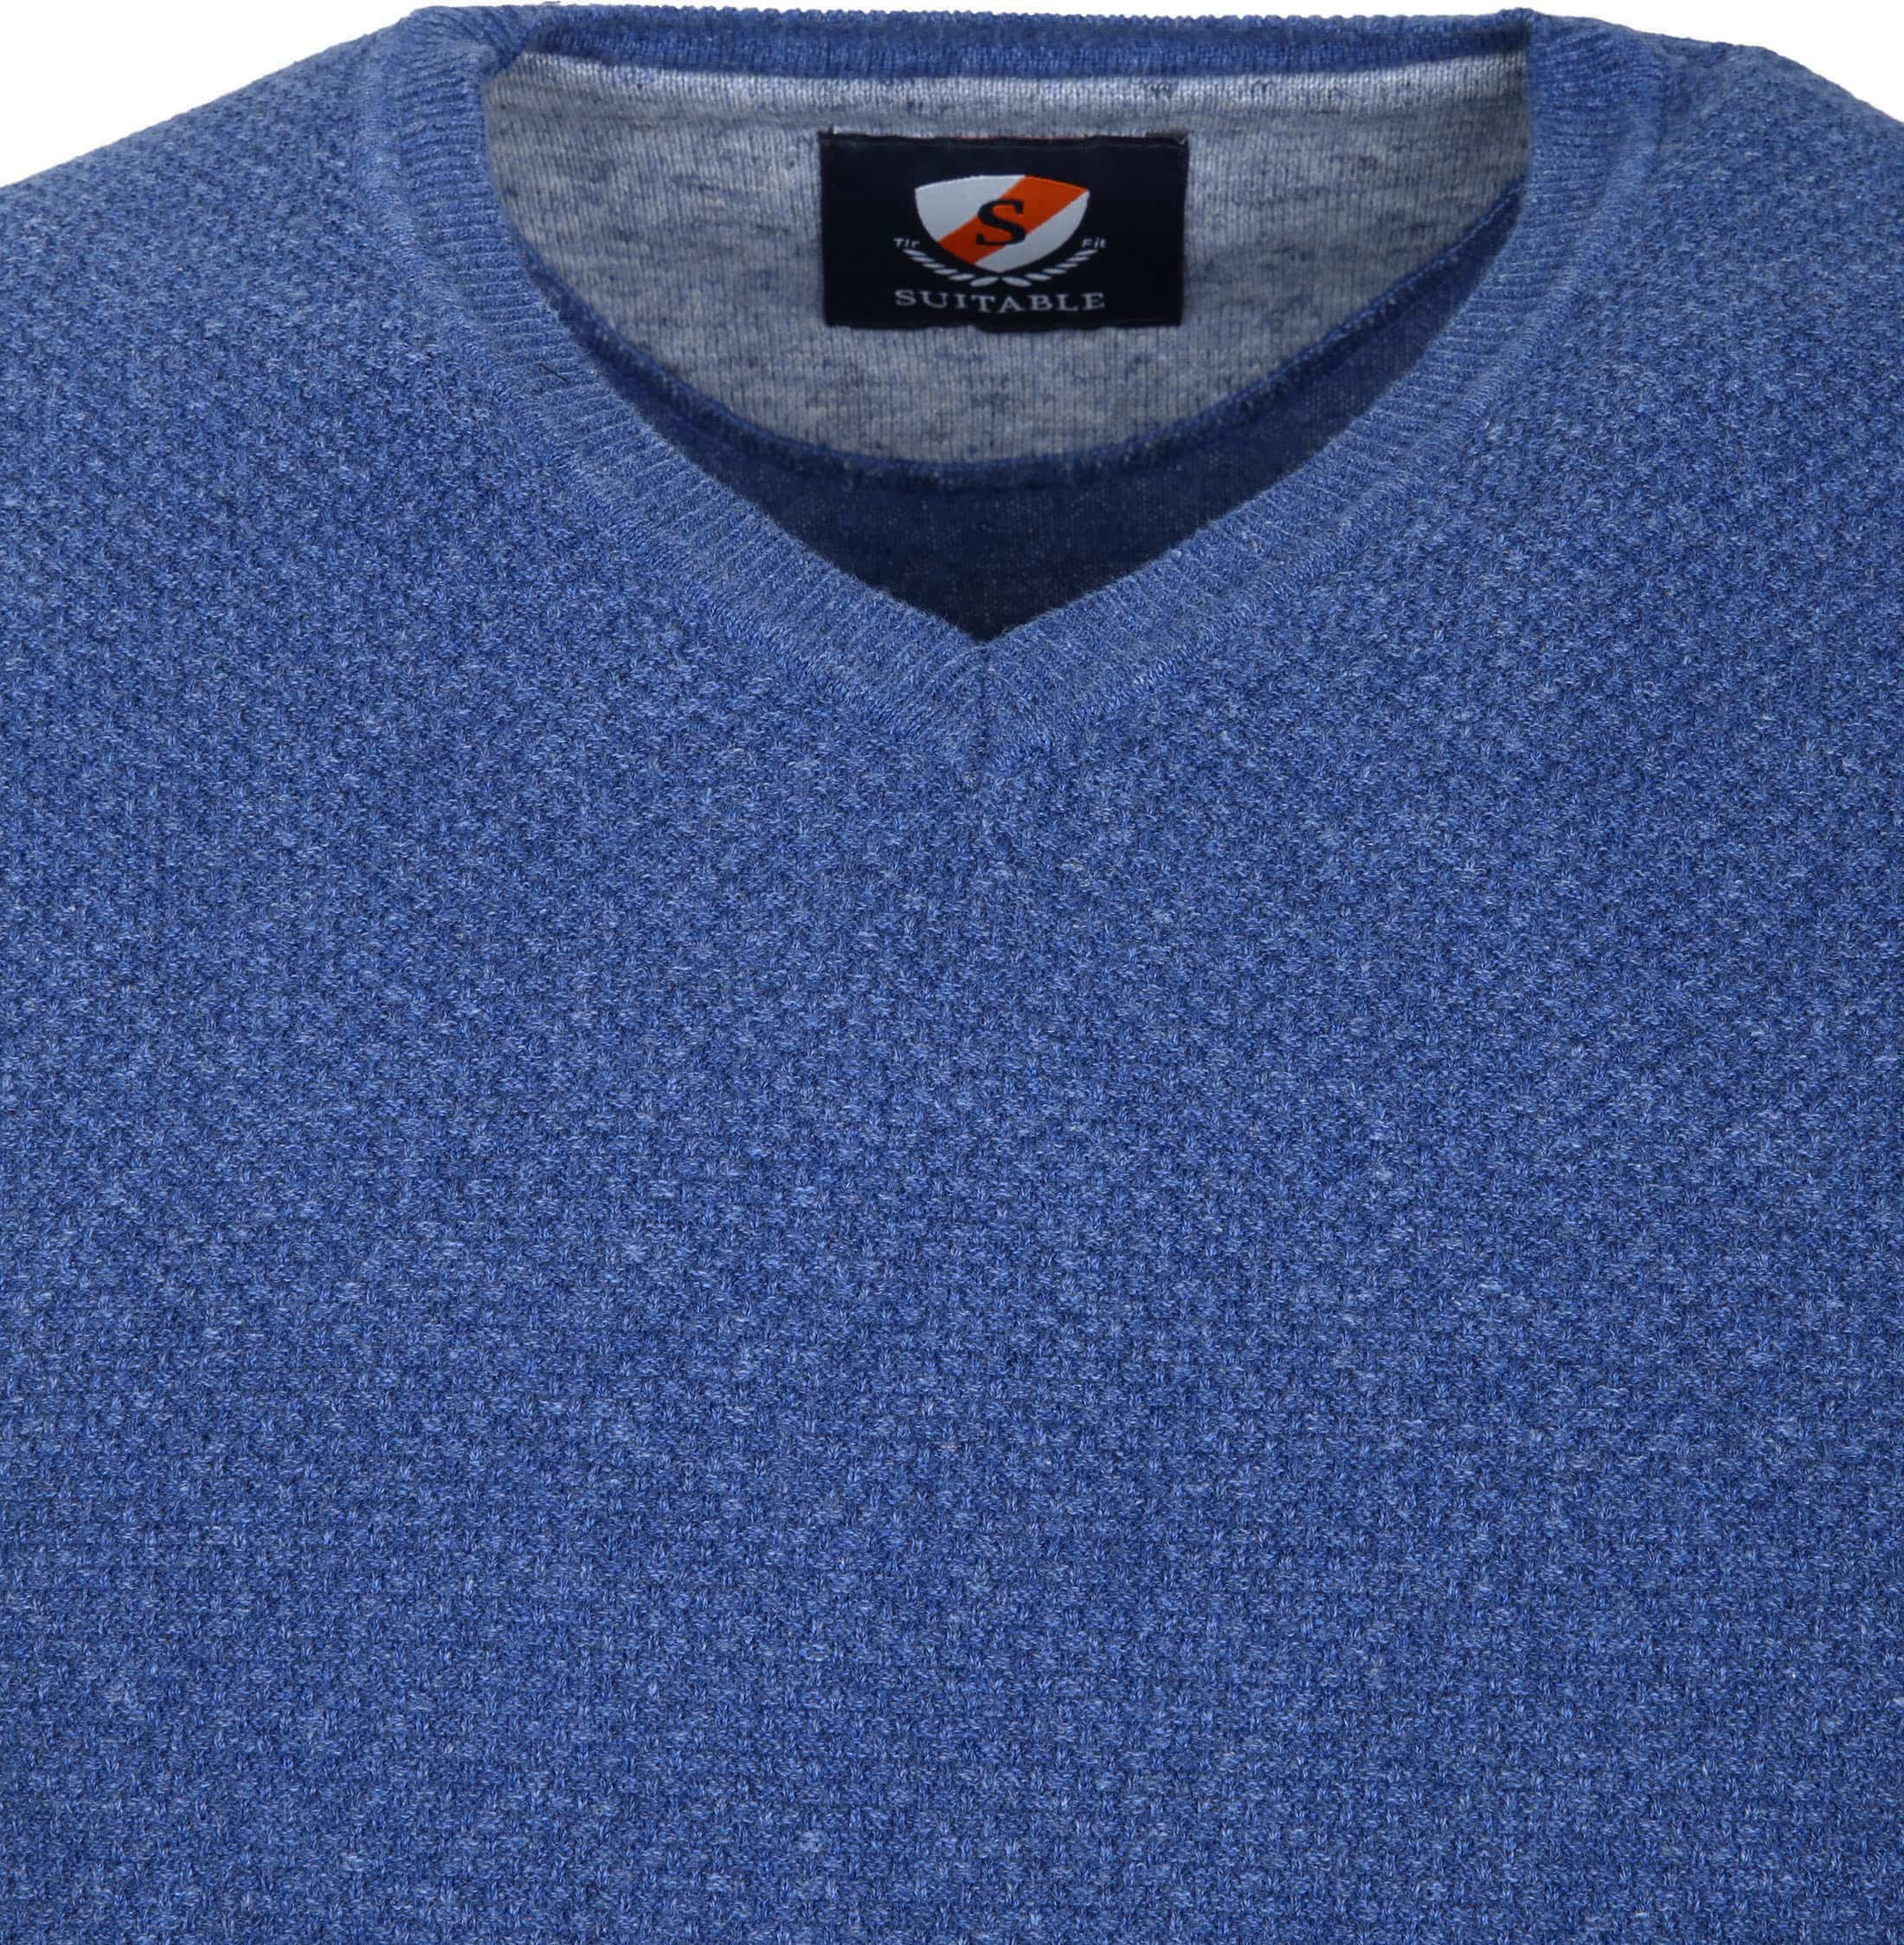 Suitable Pullover Basket Indigo foto 1